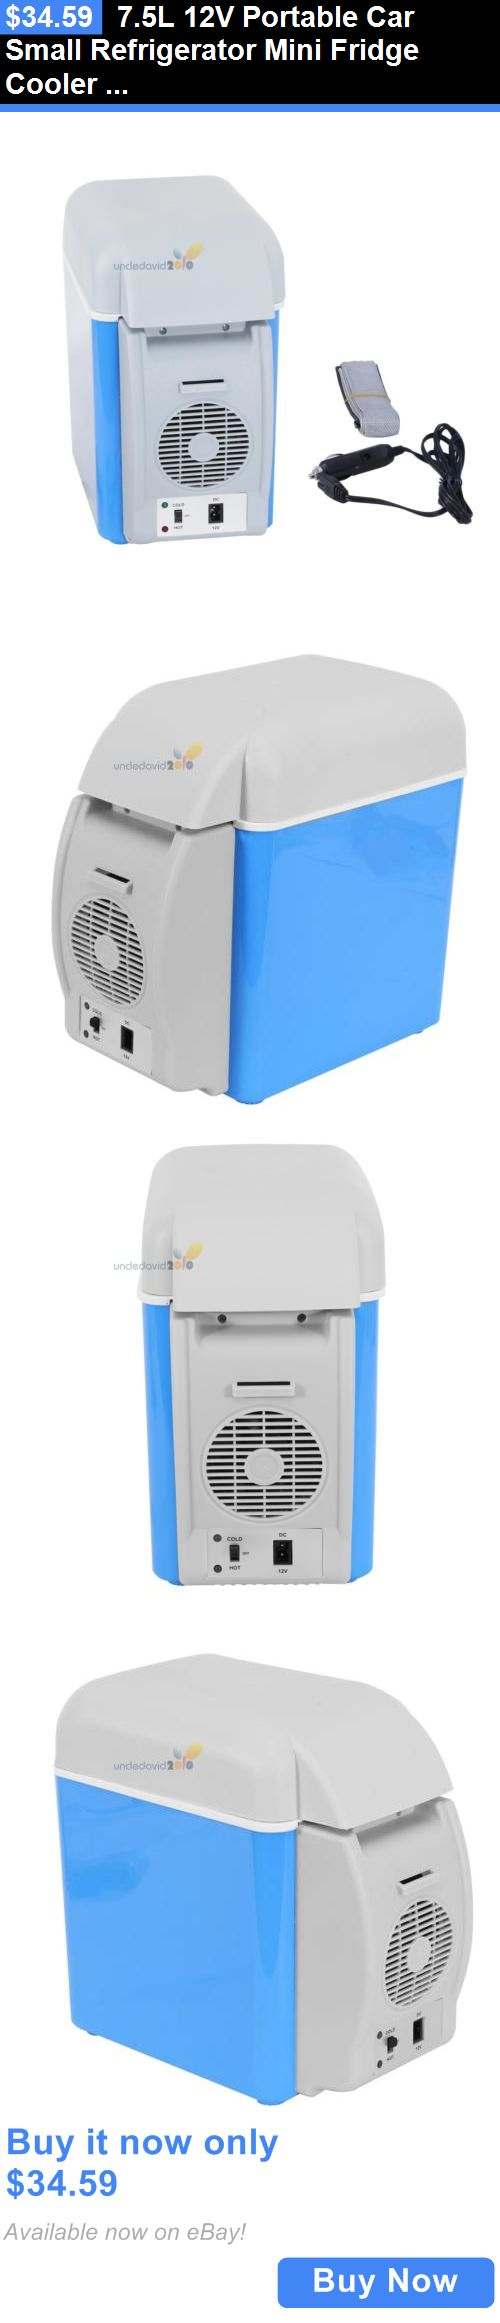 12-Volt Portable Appliances: 7.5L 12V Portable Car Small Refrigerator Mini Fridge Cooler Warmer Outdoors Usa BUY IT NOW ONLY: $34.59